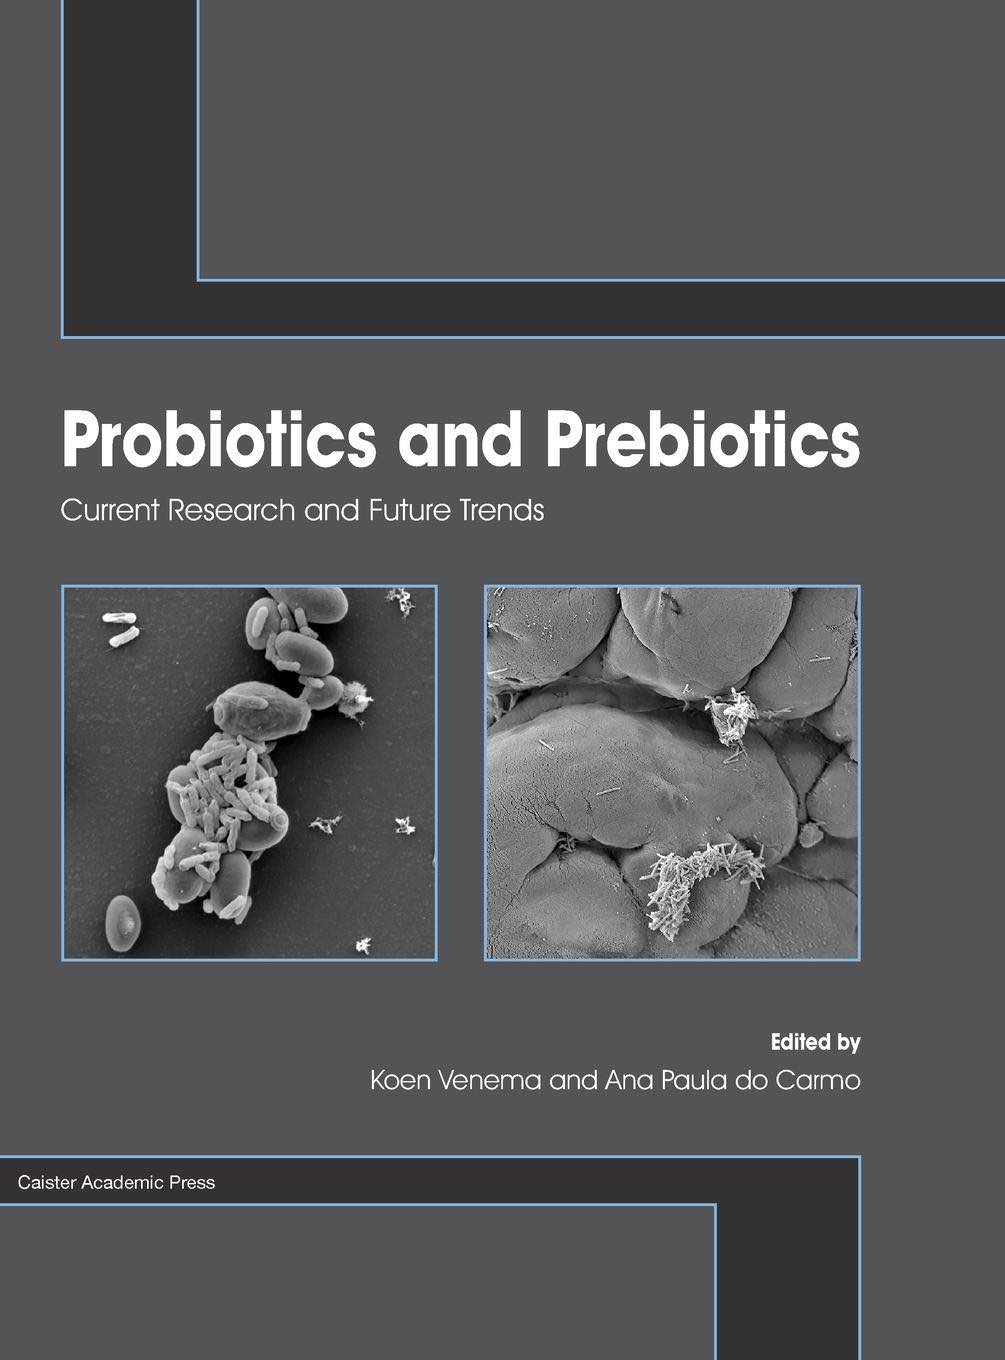 Probiotics and Prebiotics: Current Research and Future Trends